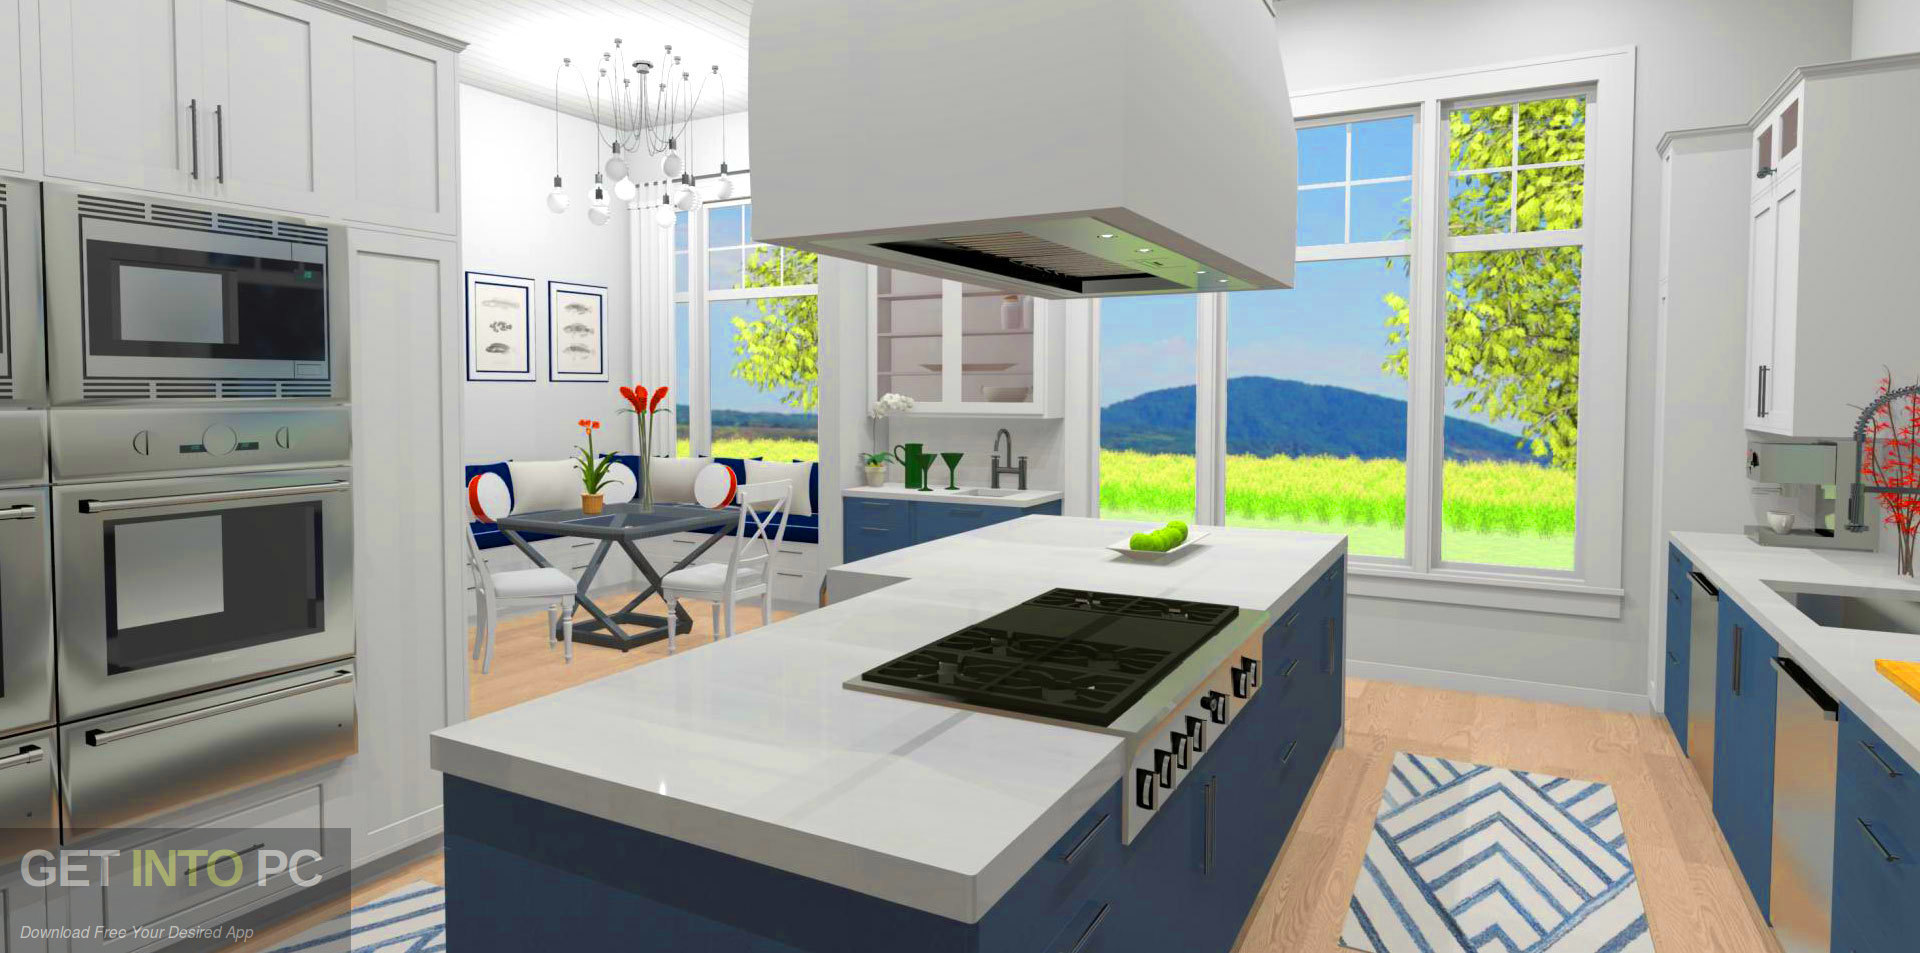 Kitchen Design Software For Pc Home Designer Pro 2020 Free Download